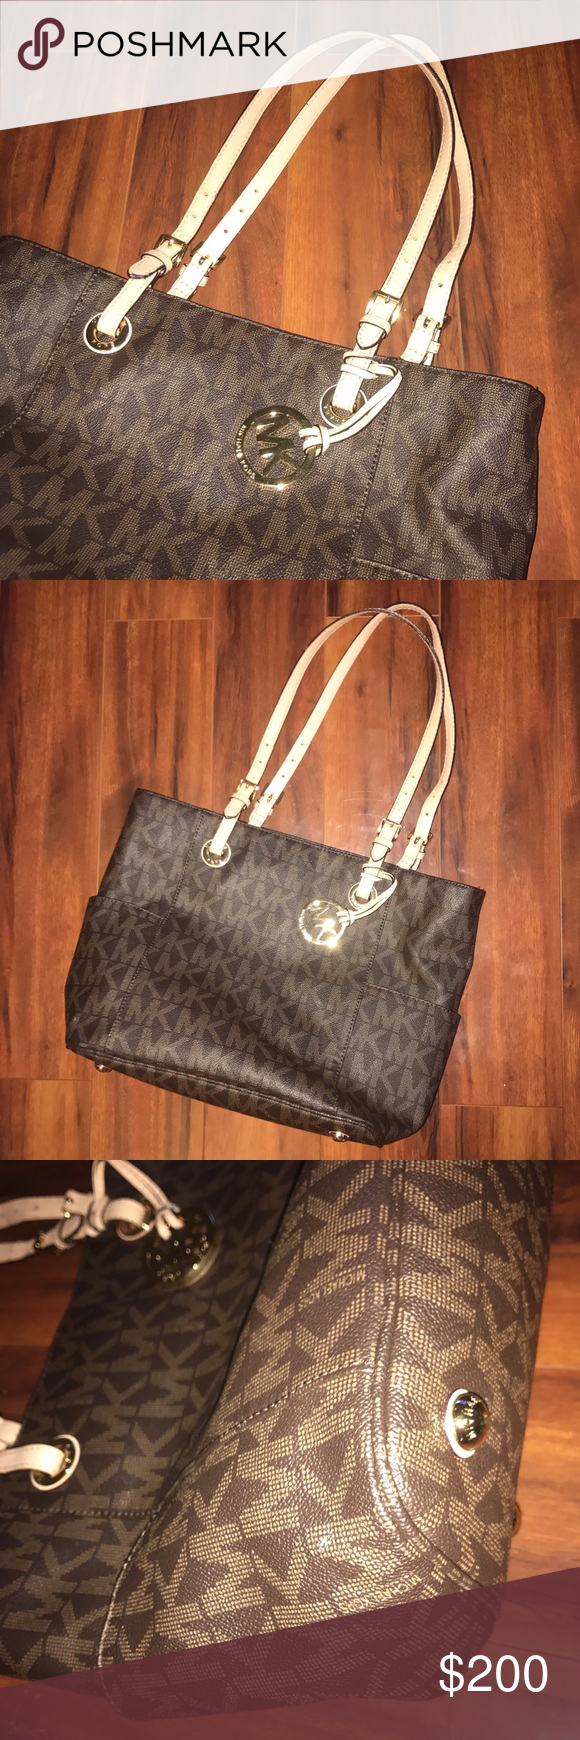 Authentic Michael Kors Tote Brown   cream MK tote with signature MK logo  all over   Metal feet on bottom   Small flaw on side, barely noticeable  even up ... 27858e02f7